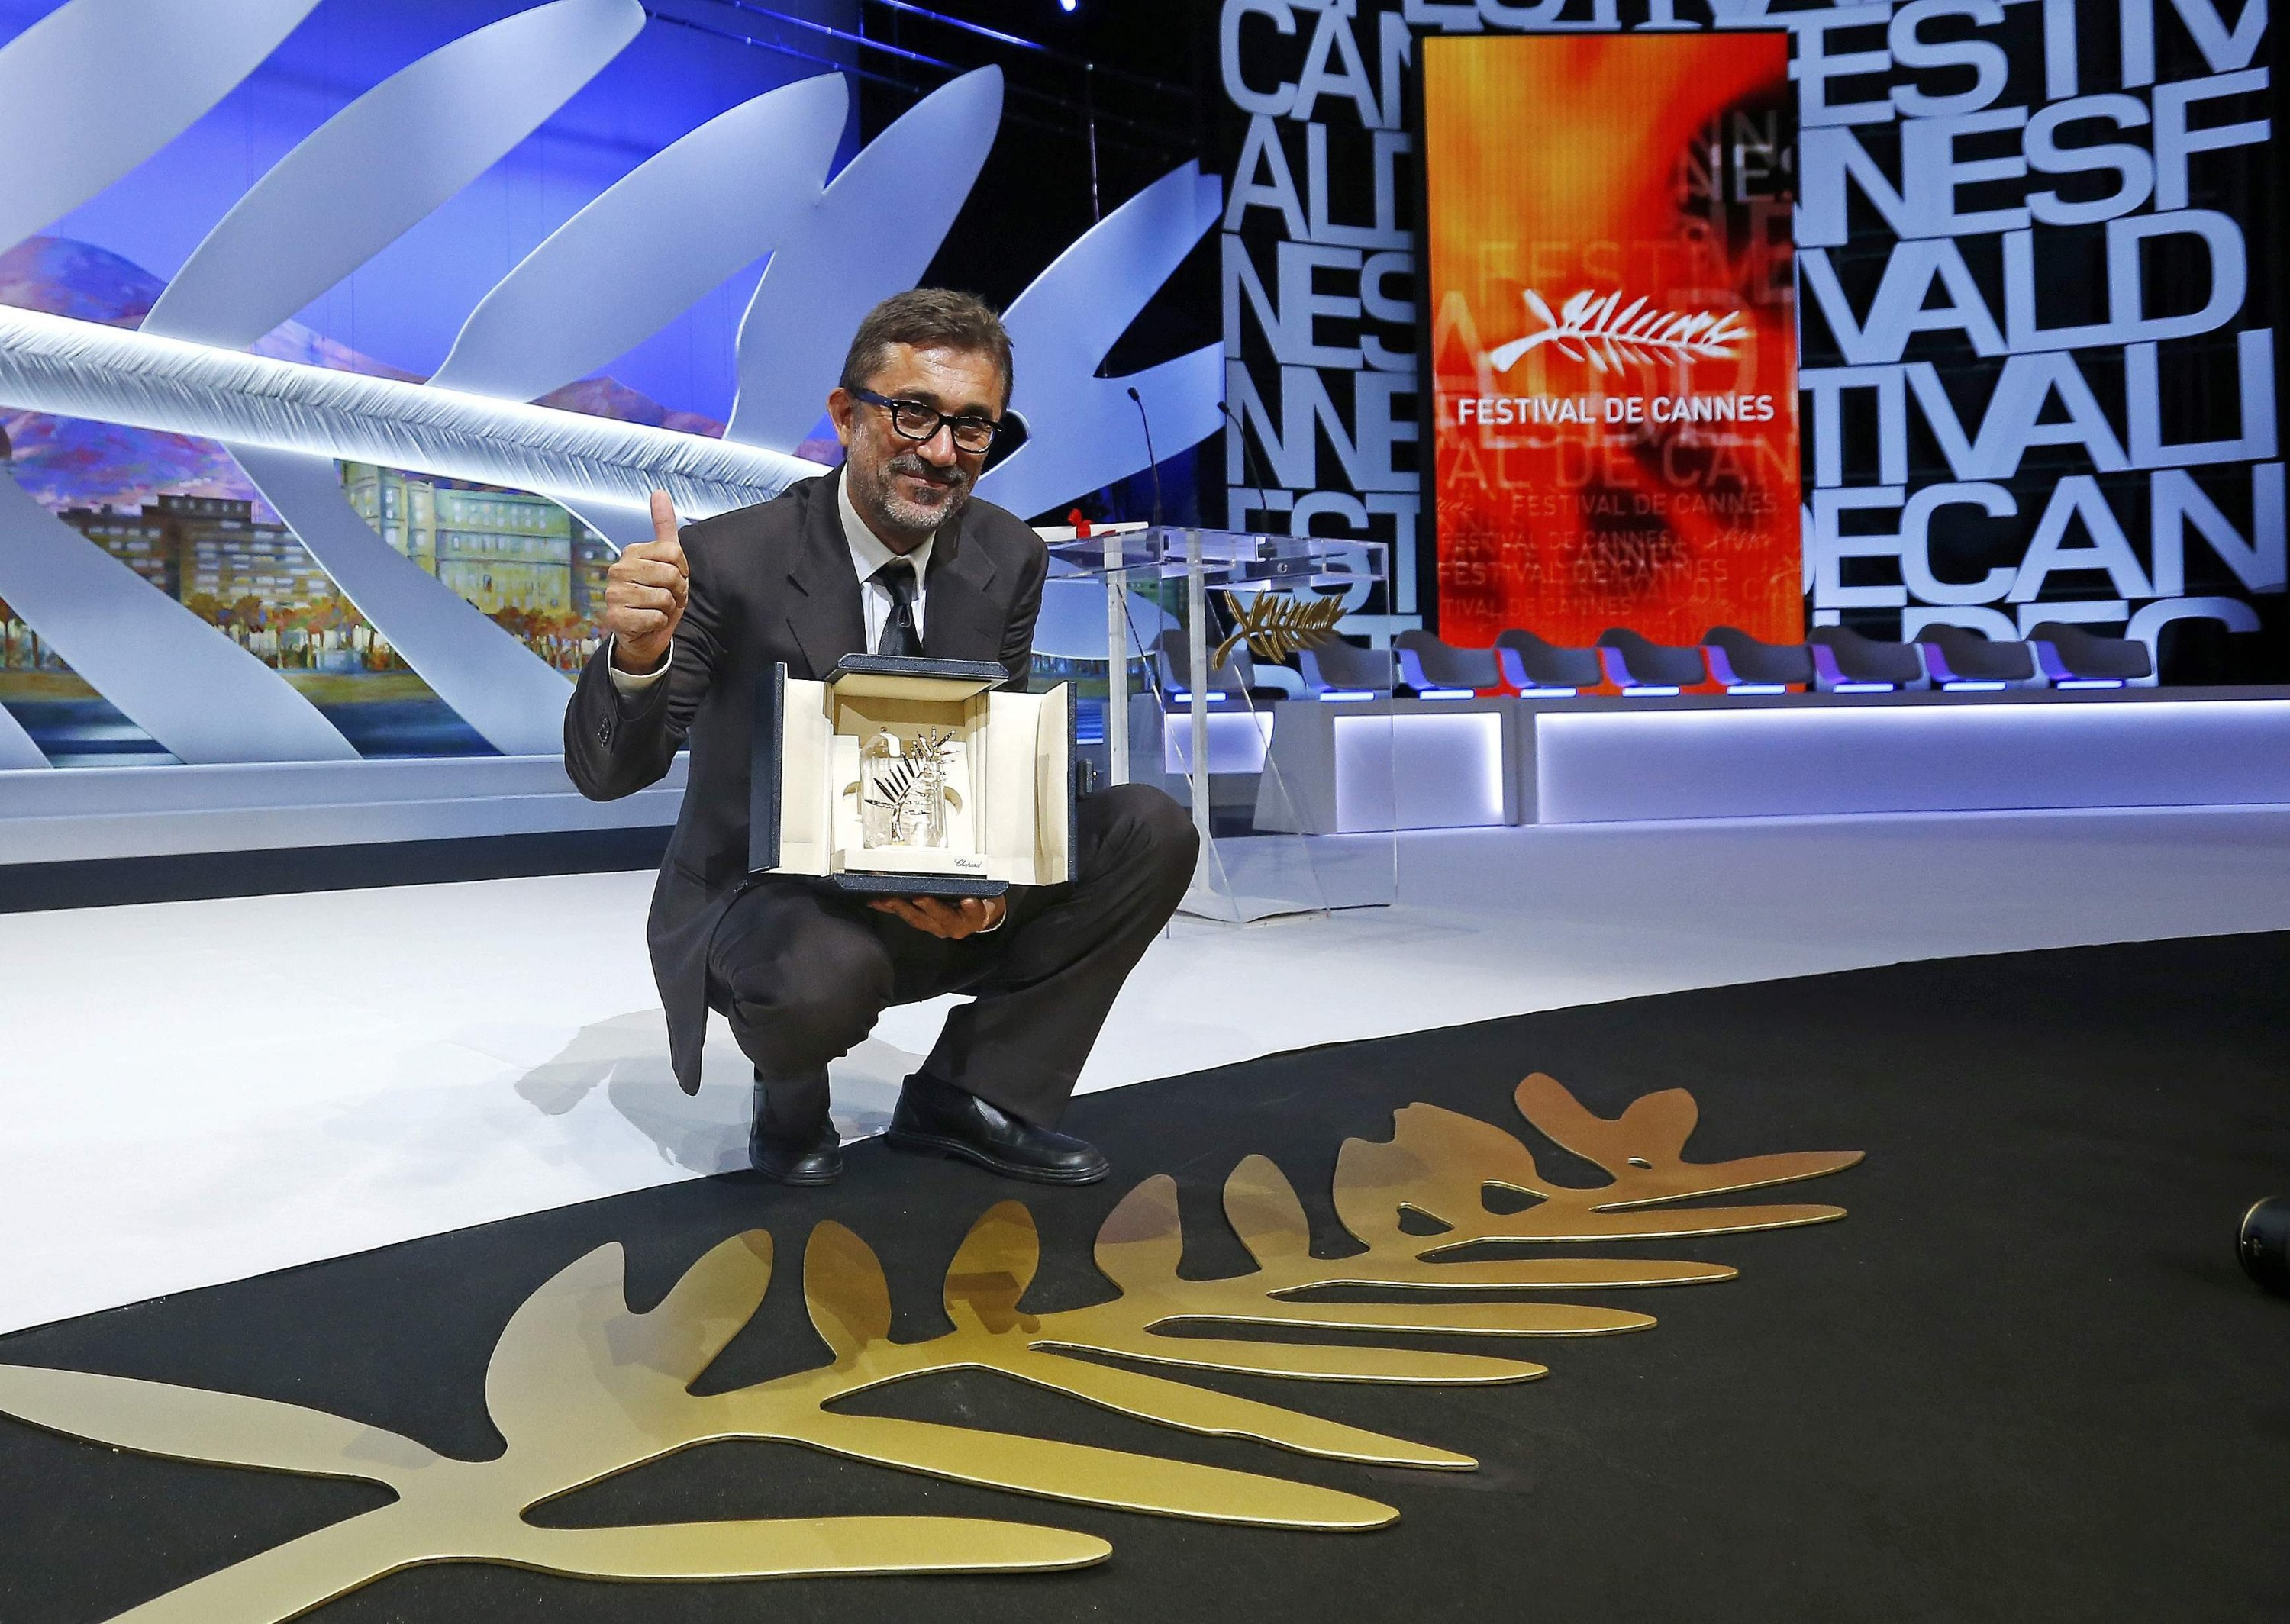 Director Nuri Bilge Ceylan, Palme d'Or award winner for his film 'Kış Uykusu' ('Winter Sleep'), poses on stage during the closing ceremony of the 67th Cannes Film Festival in Cannes, France, May 24, 2014. (REUTERS Photo)